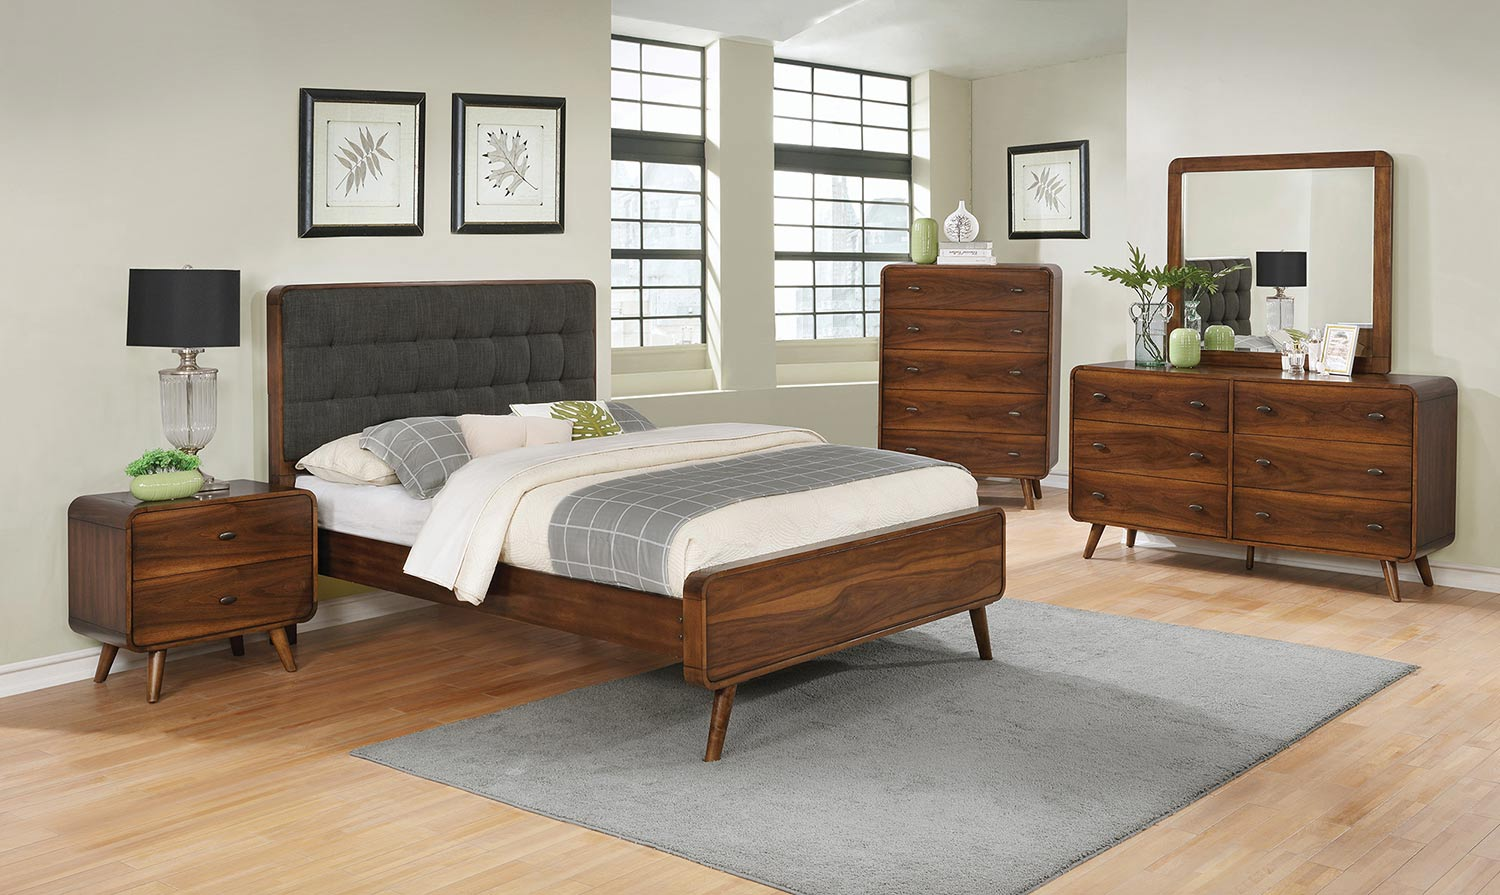 Coaster Robyn Bedroom Set - Dark Walnut